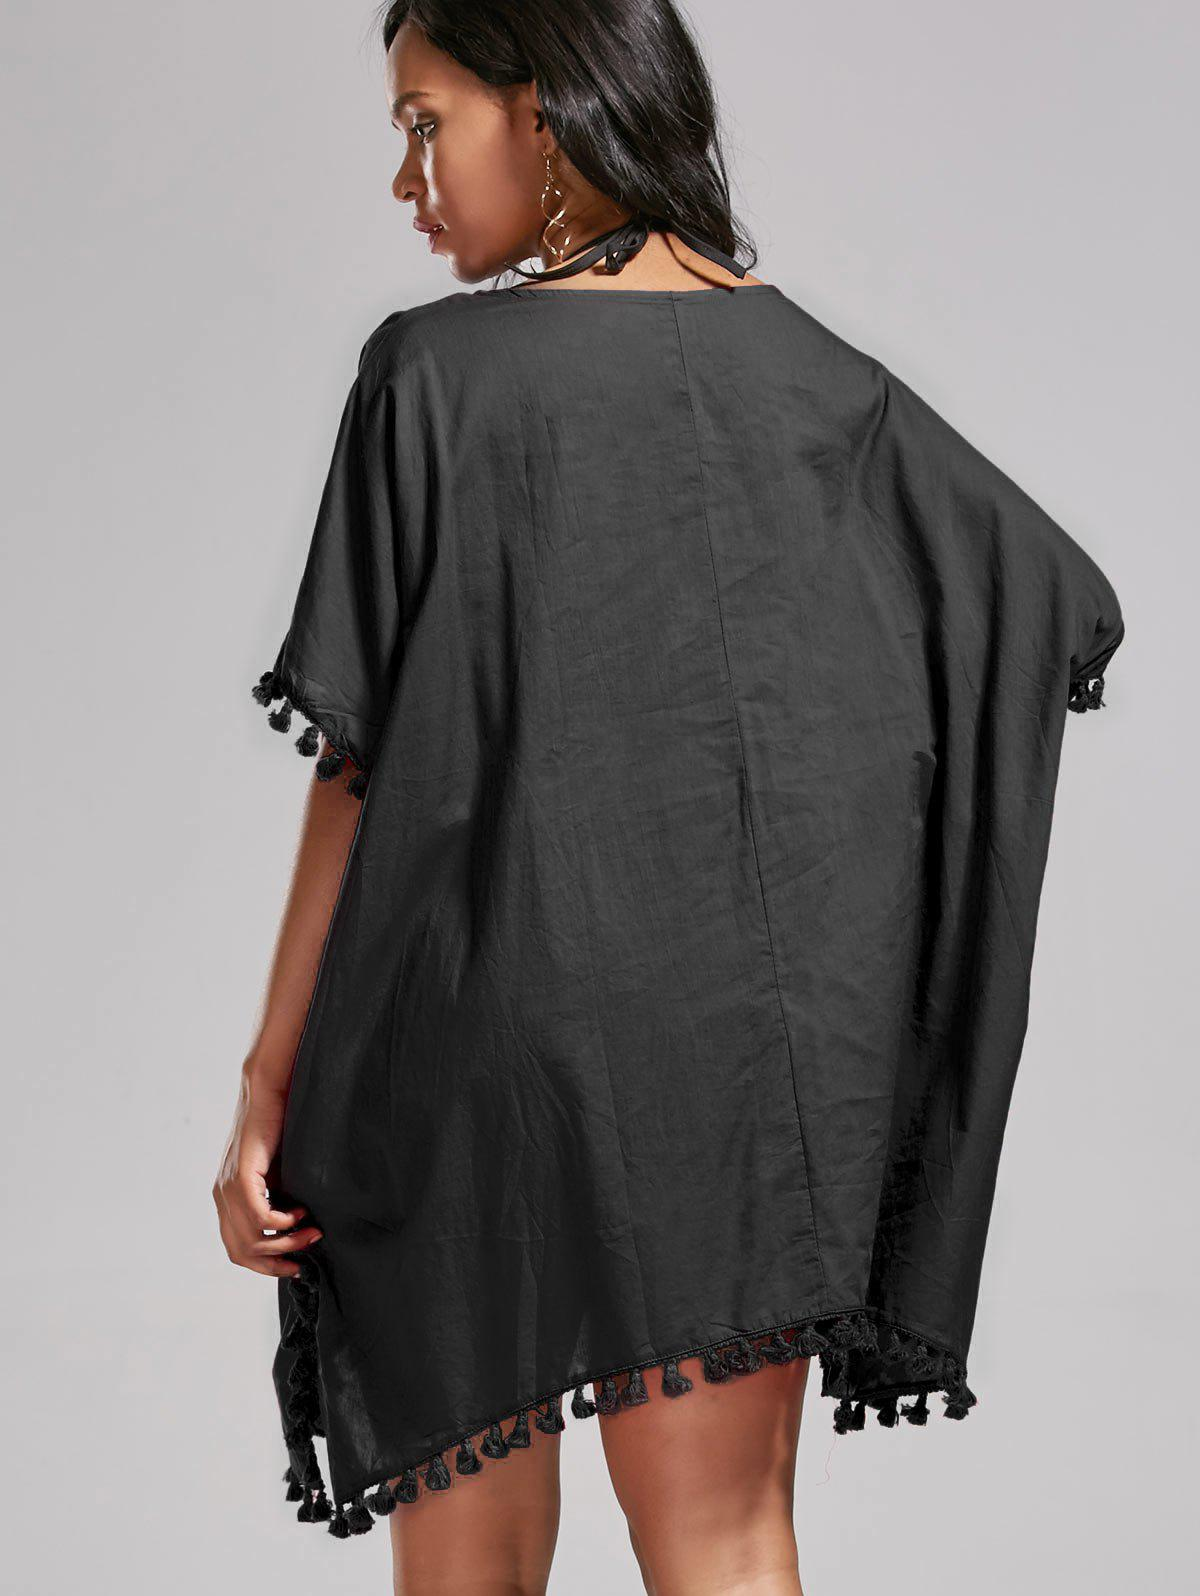 Batwing Sleeve Oversized Cover Up Dress - BLACK ONE SIZE